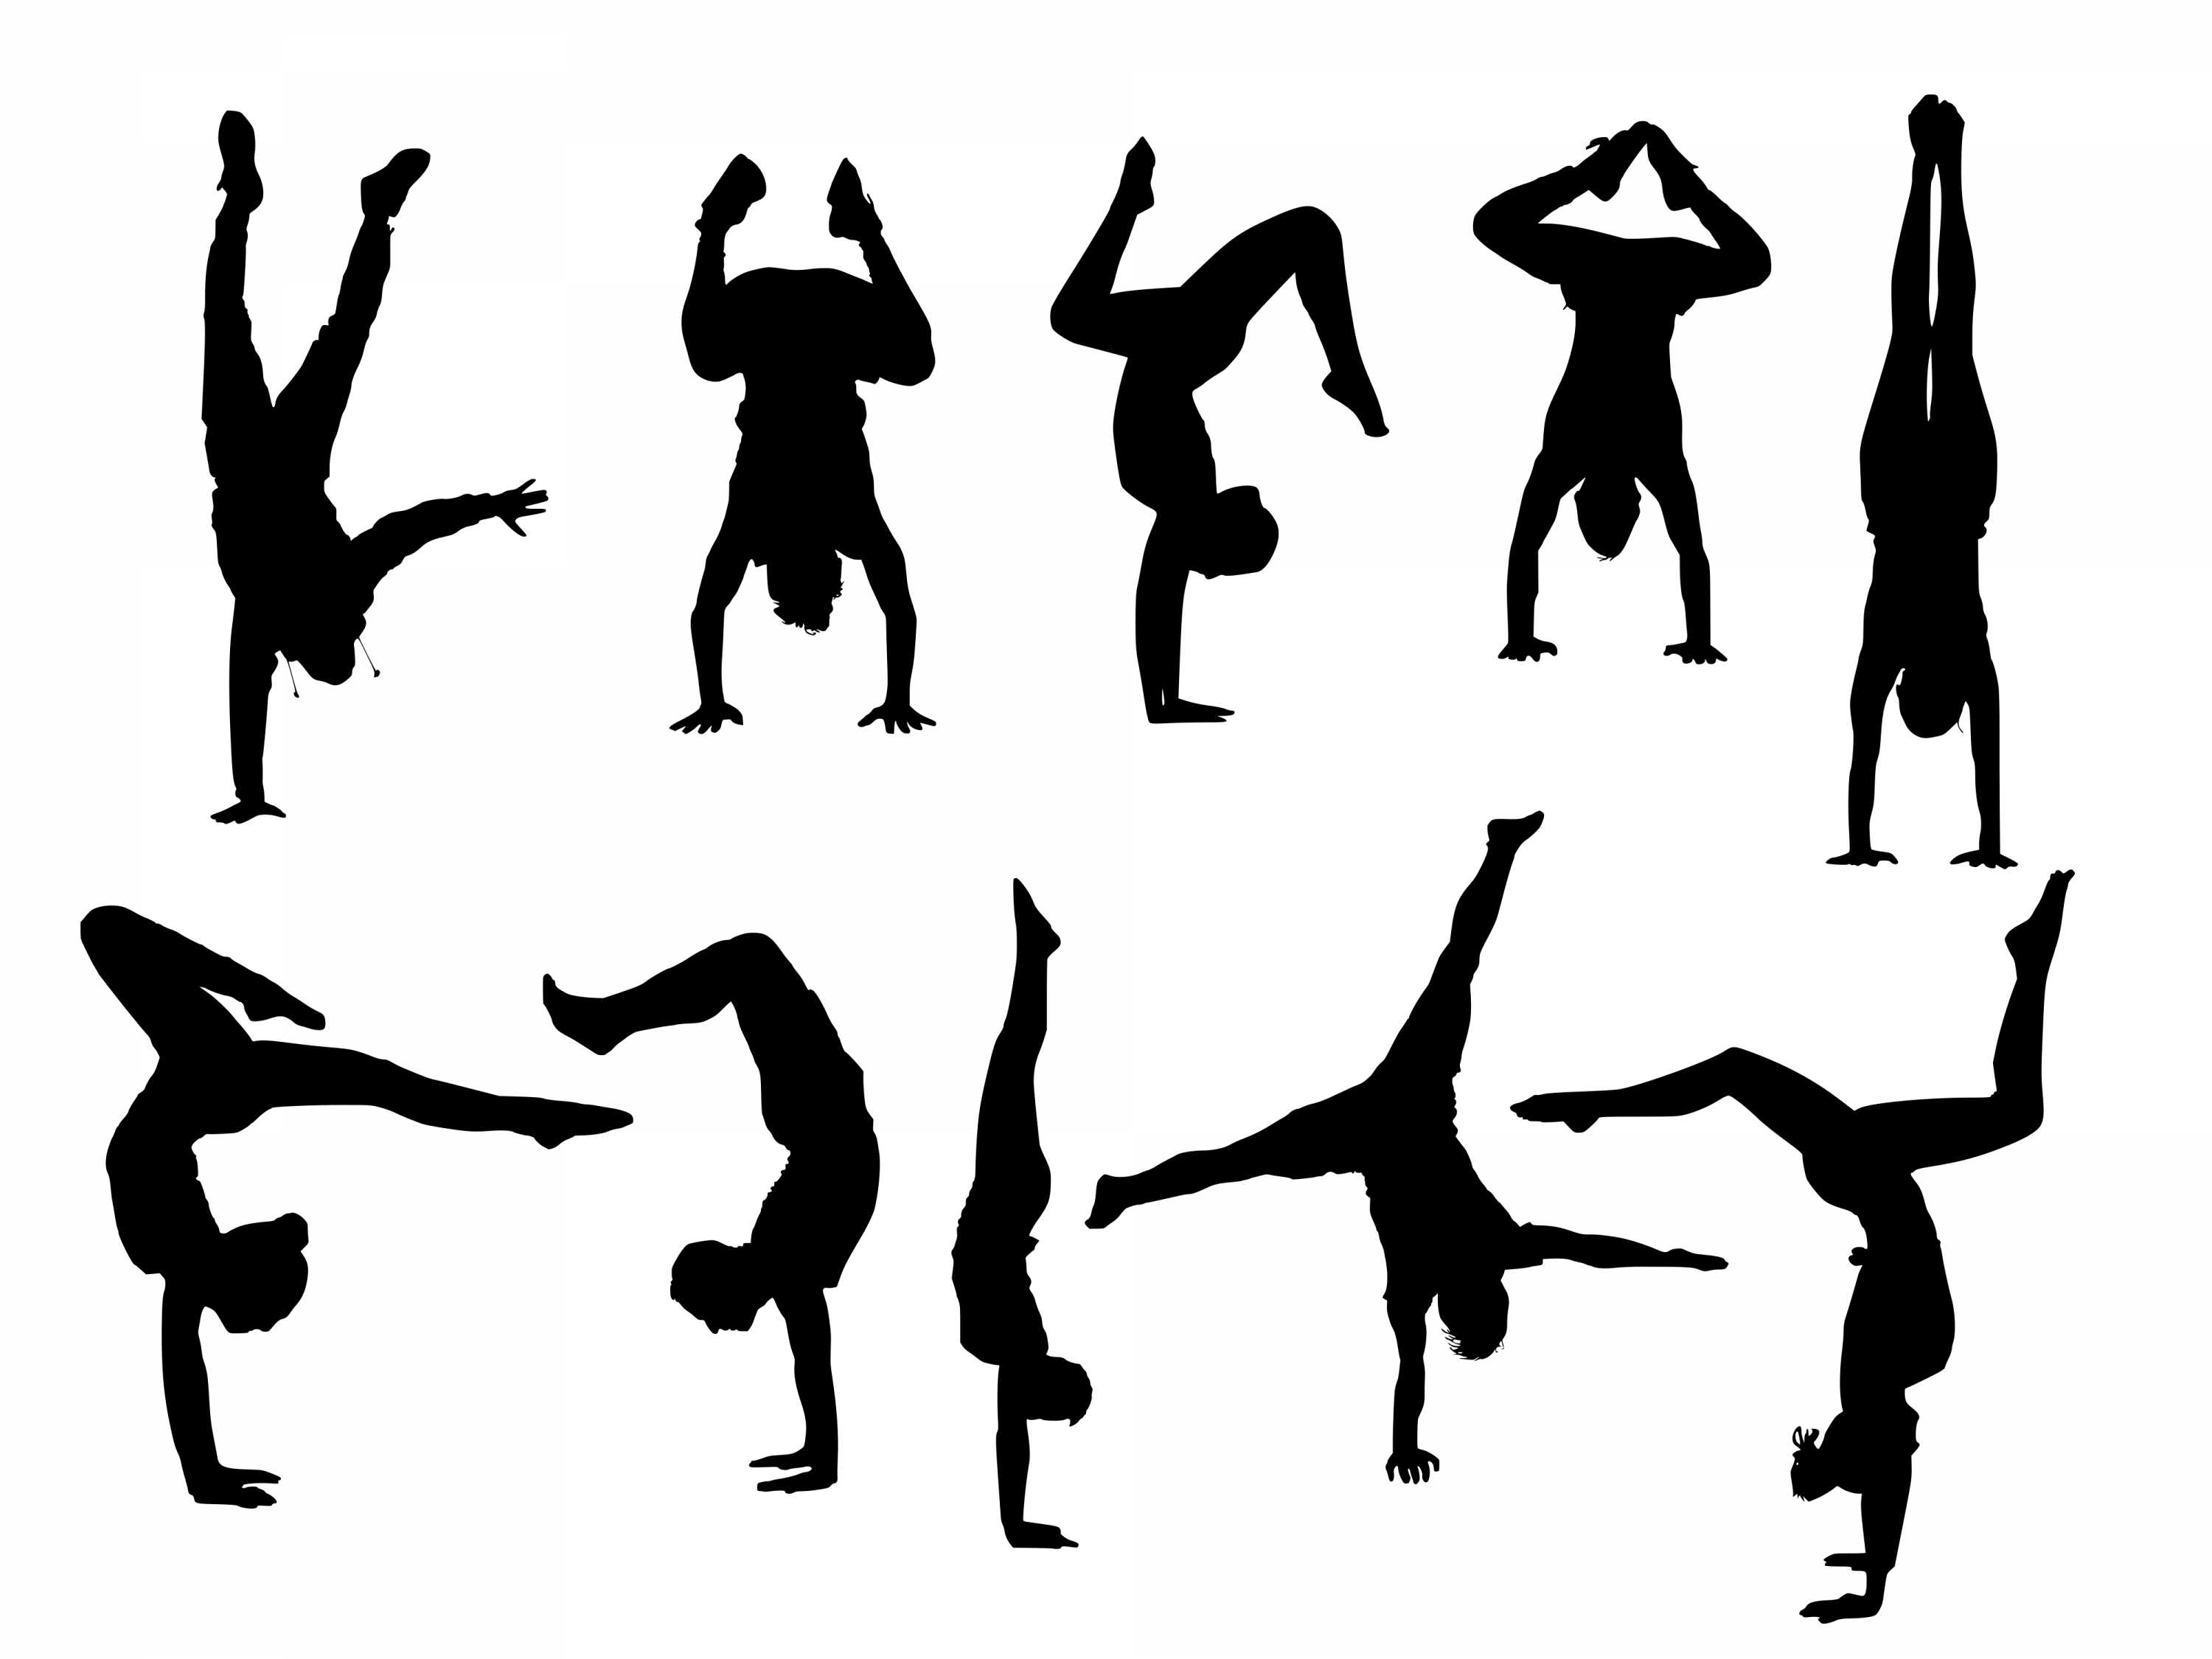 hand-stand-silhouette-cover.jpg